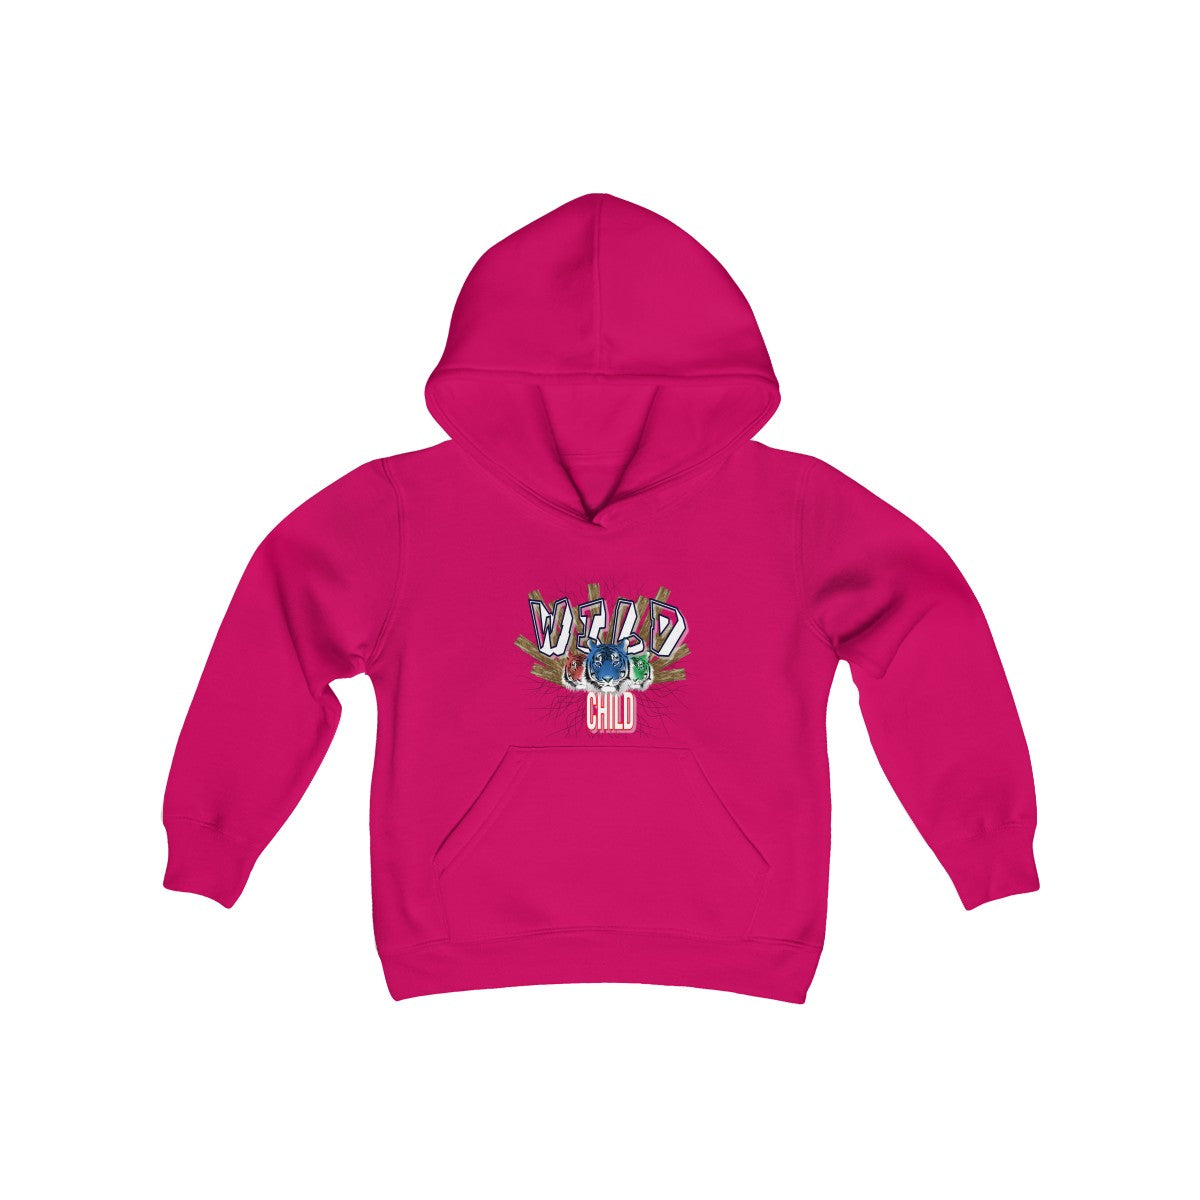 Youth Heavy Blend Hooded Sweatshirt - Wild Child